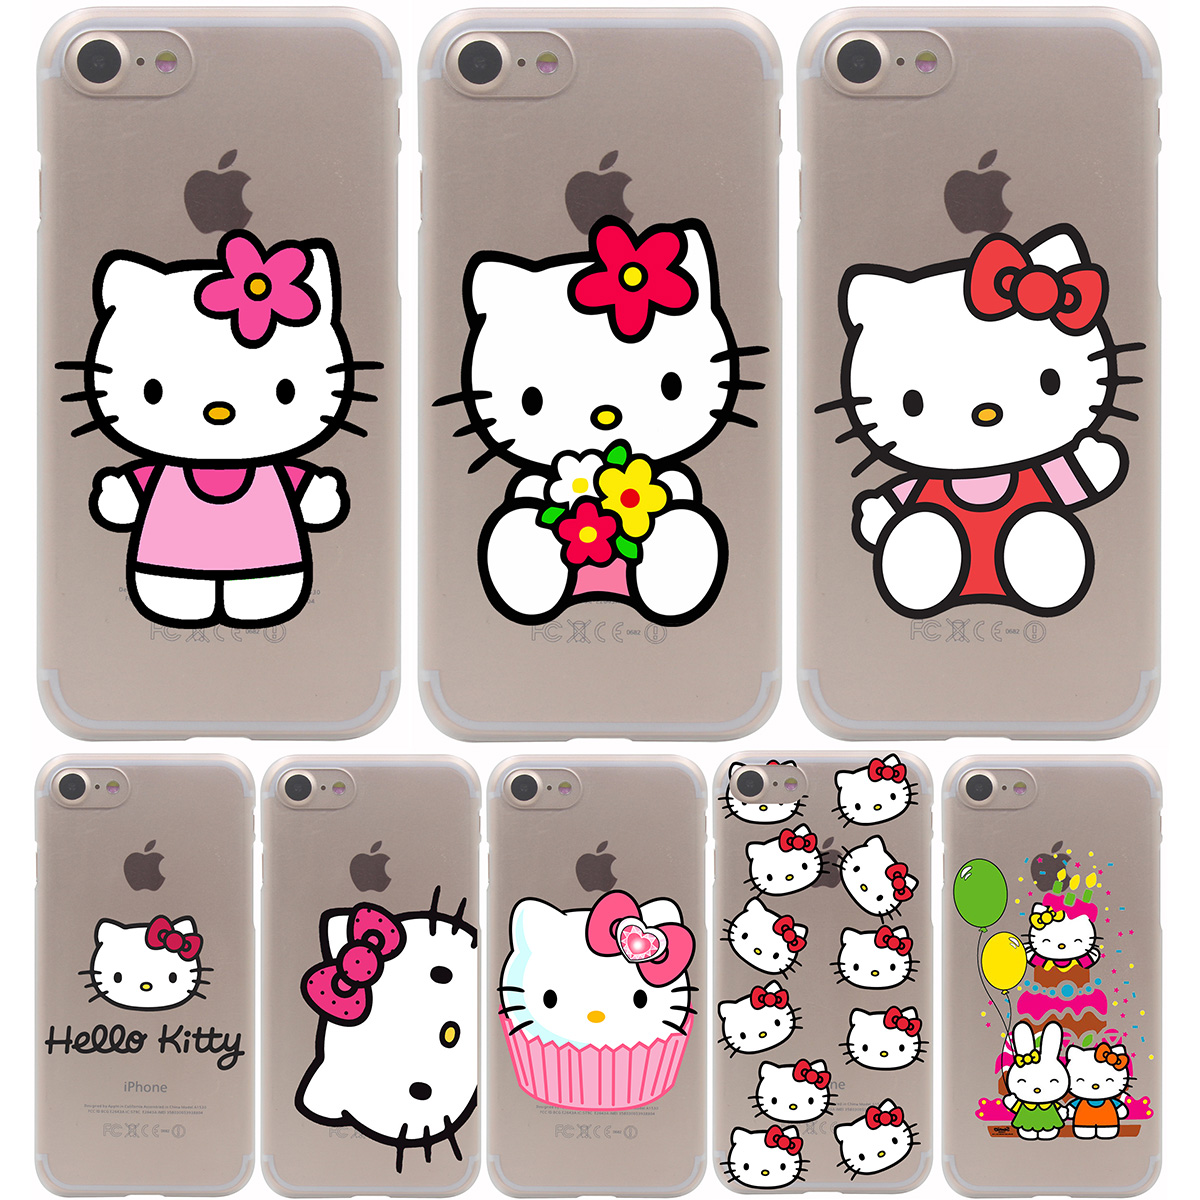 hello kitty accessories for iphone 4. Black Bedroom Furniture Sets. Home Design Ideas